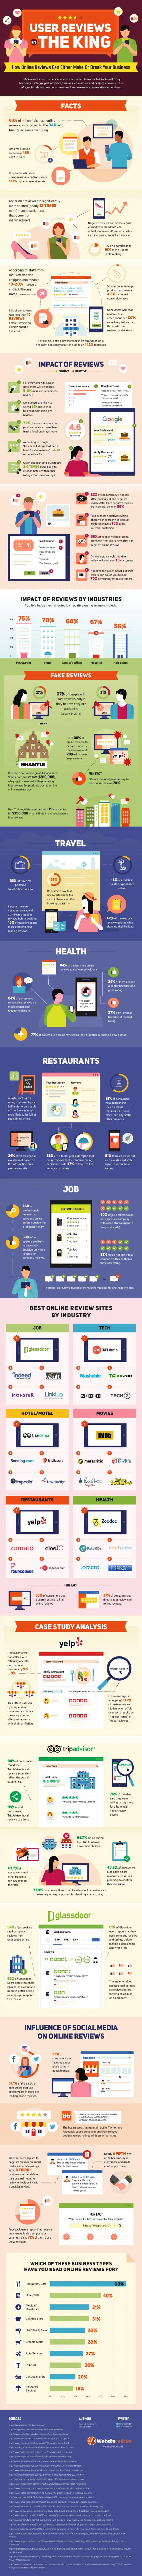 Infographic about how user reviews can either make or break a business.